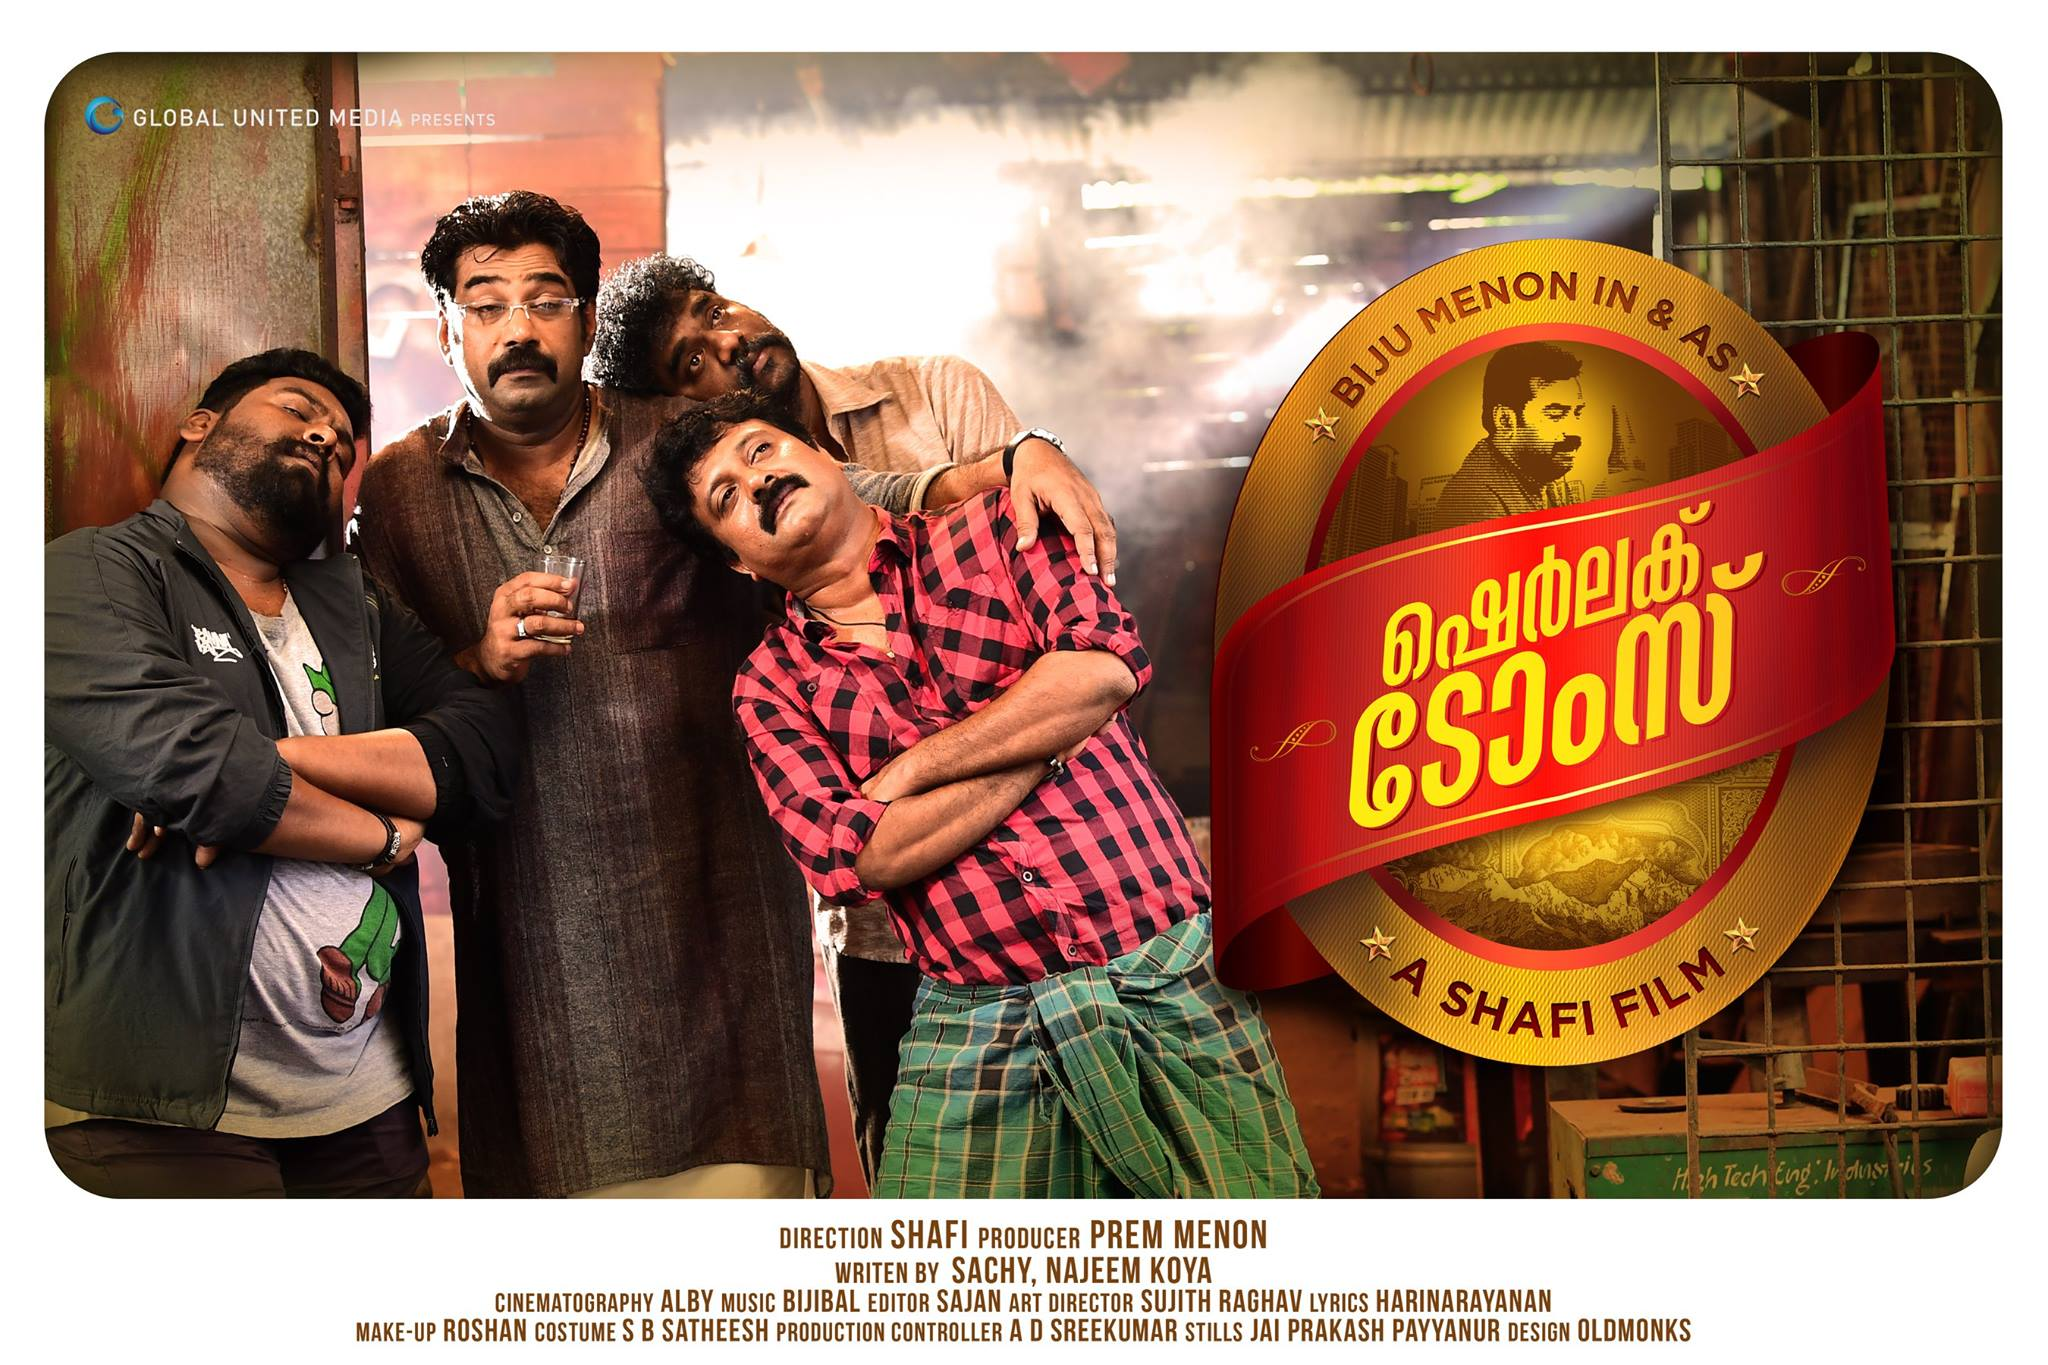 Sherlock Toms (2017) DVDRip Malayalam Full Movie Watch Online Free